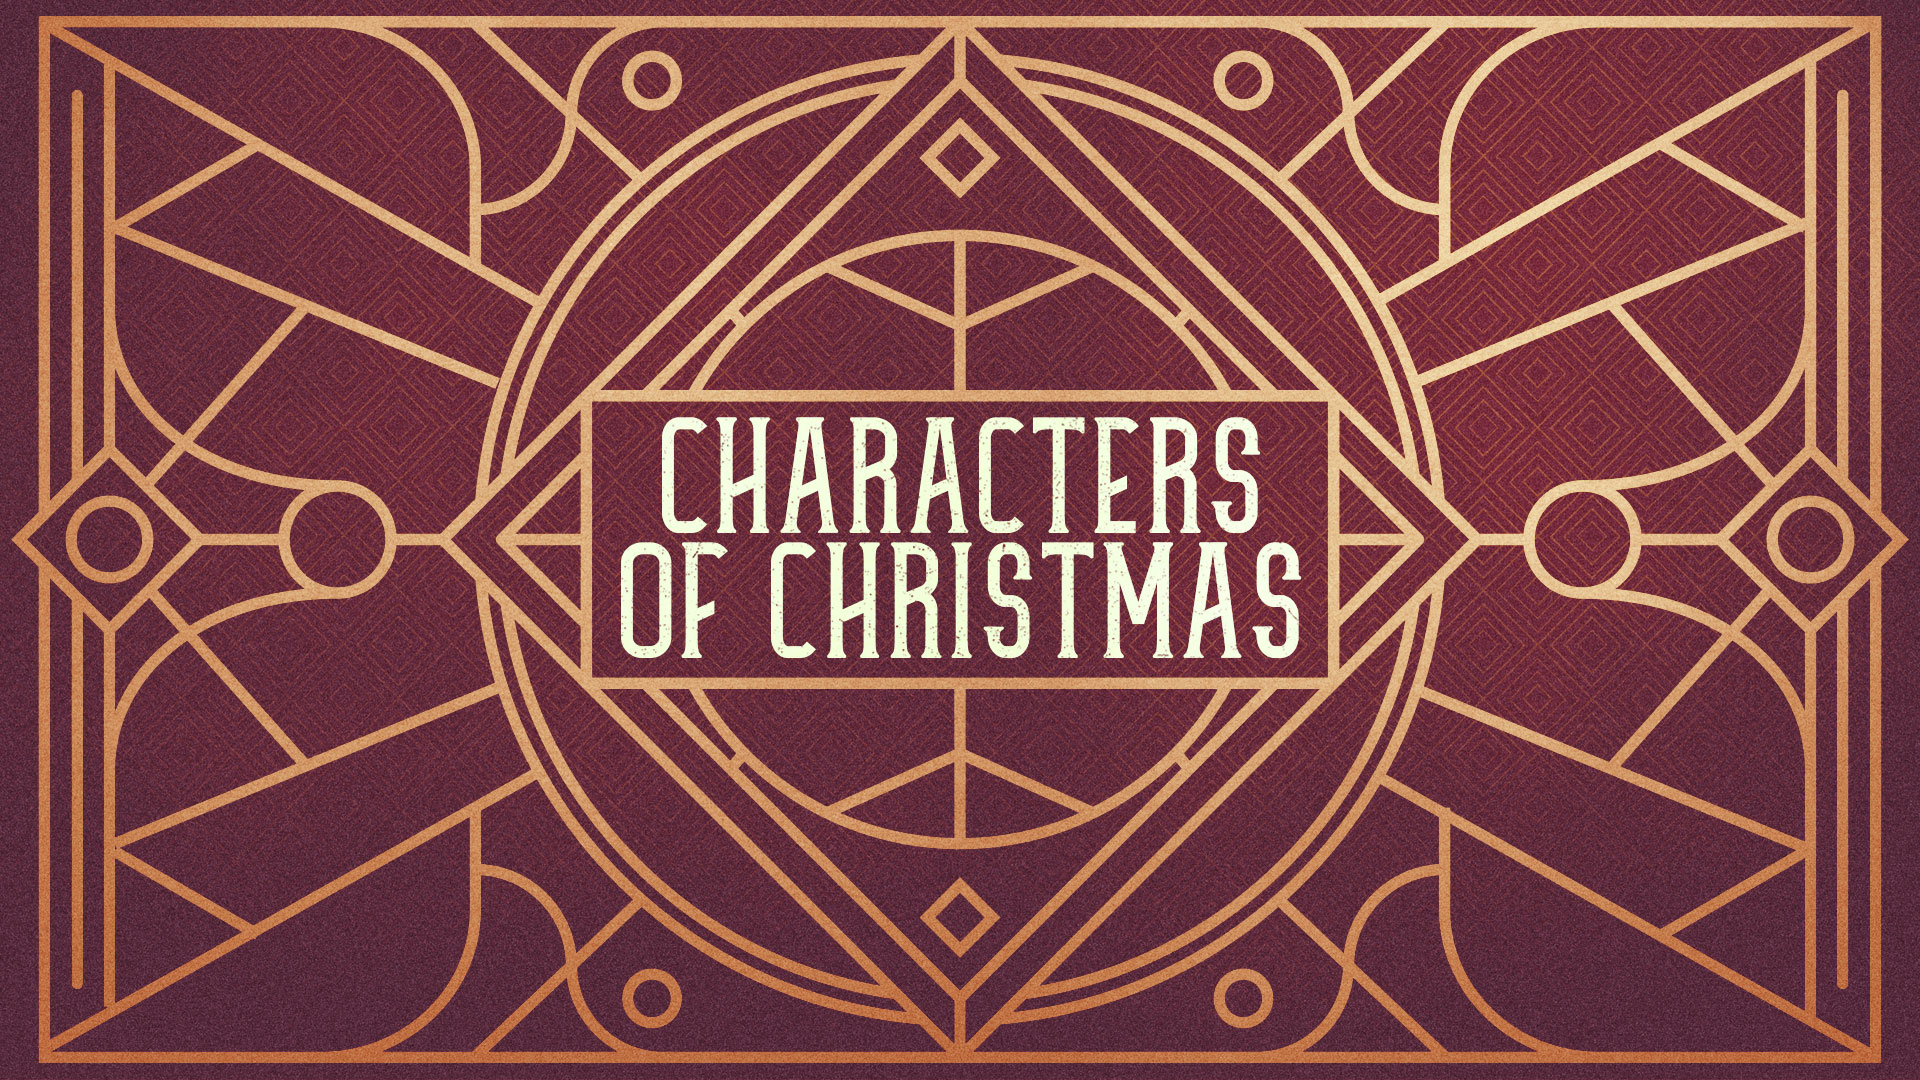 Characters of Christmas